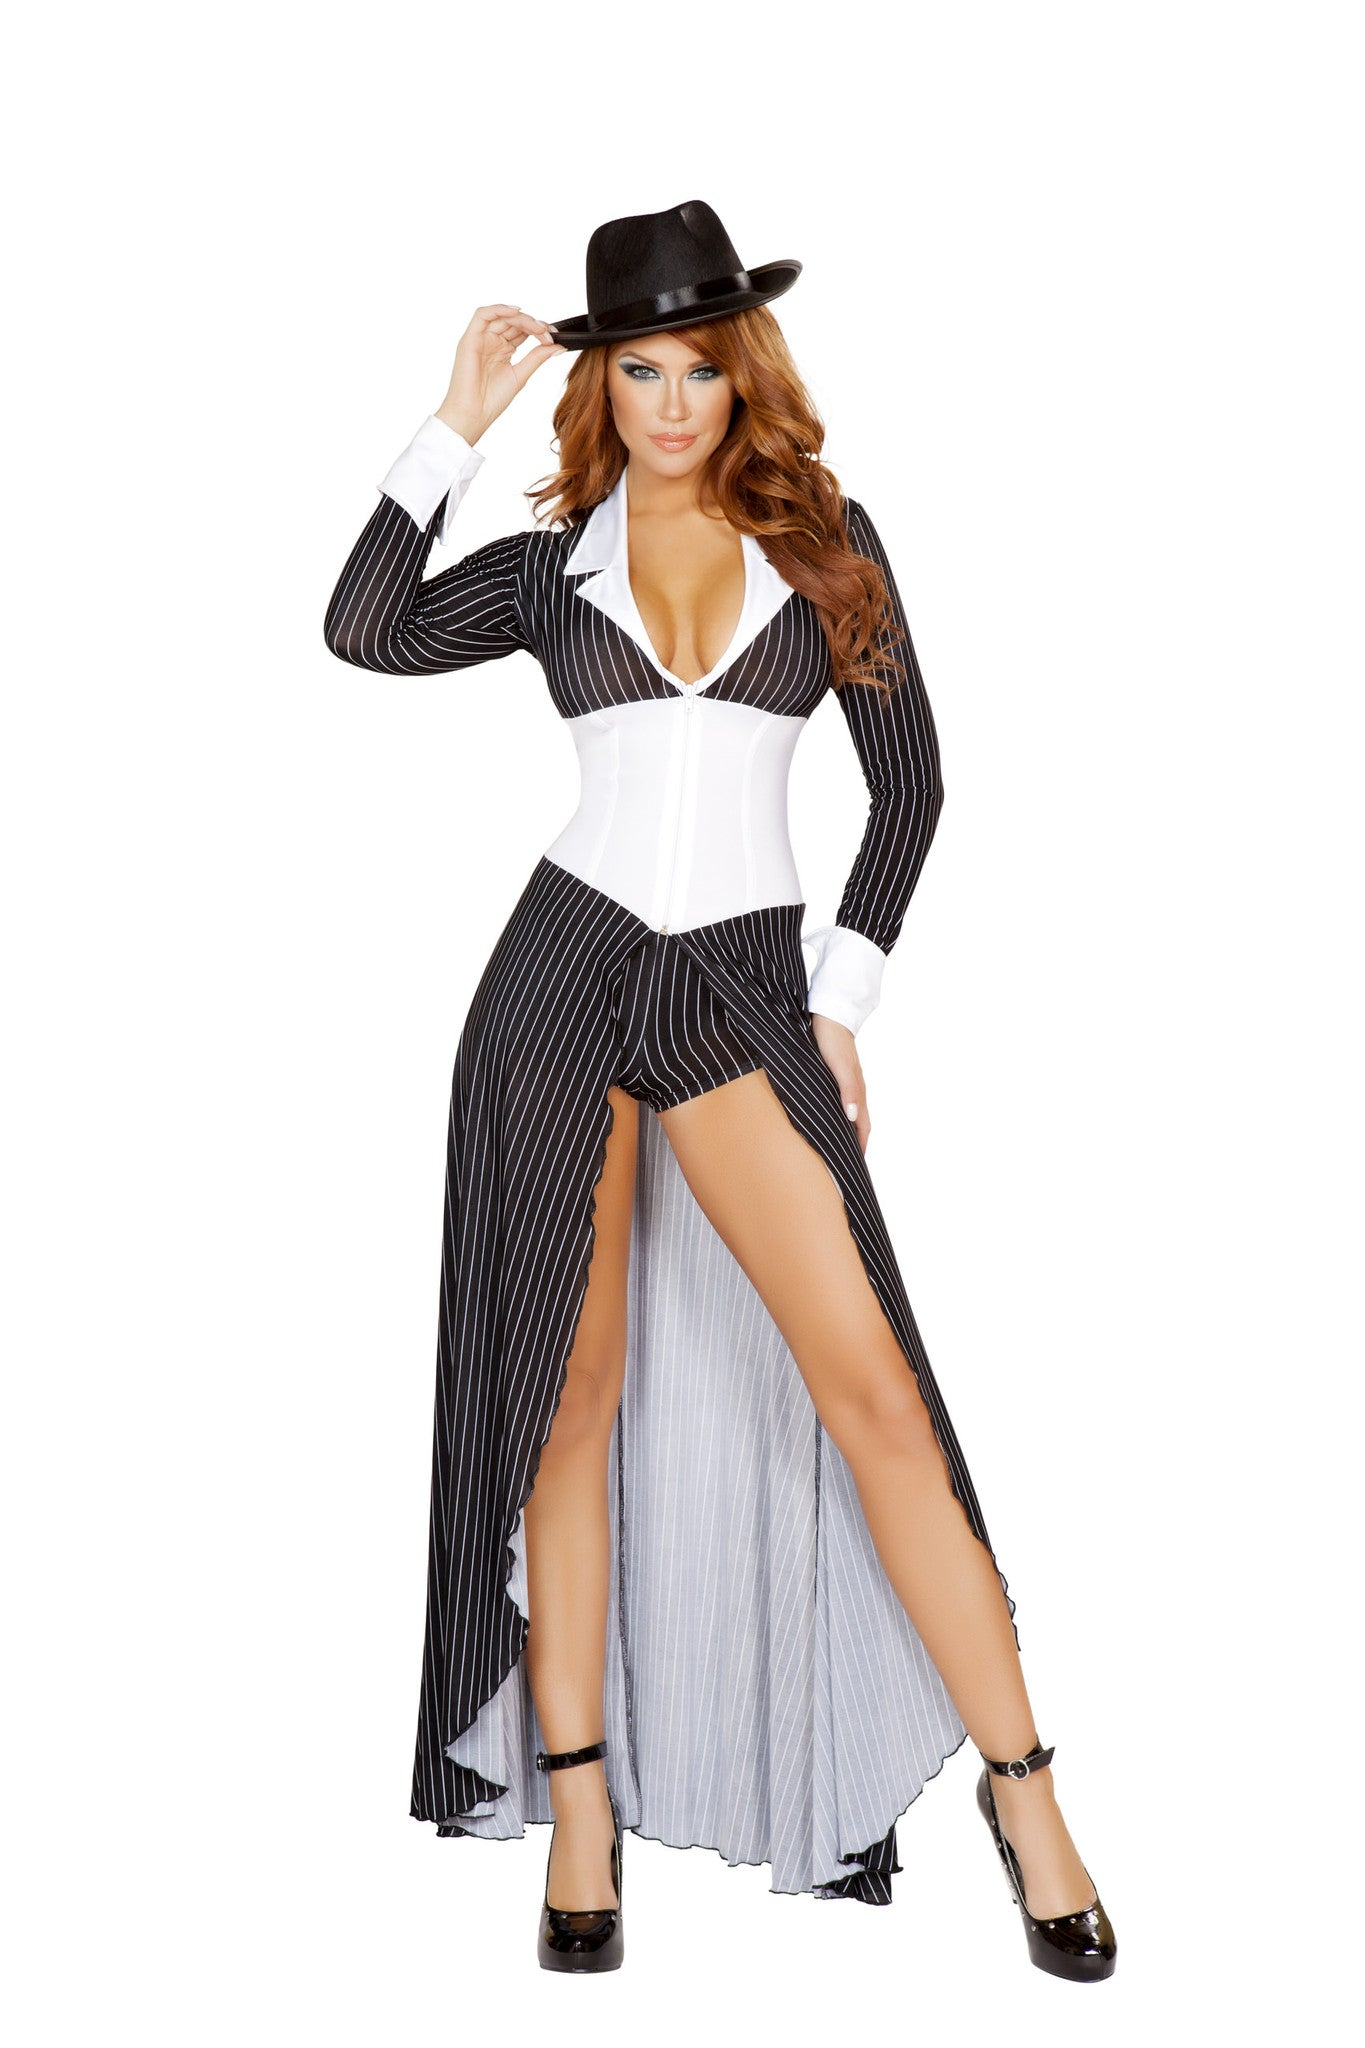 2pc Mafia Mama ${description} | Roma Costume and Roma Confidential wholesale manufacturer of Women Apparel bulk world wide wholesale and world wide drop ship services for Adult Halloween Costumes, Sexy and Elegant Lingerie, Rave Clothing, Club wear, and Christmas Costumes. Costumes, Roma Costume, Inc., Roma Costume, Roma Confidential, Wholesale clothing, drop ship, drop ship service, Wholesale Lingerie, Wholesale Adult Halloween Costumes, Rave Clothing, EDM Clothing, Festival Wear, Christmas Costumes, Clubwear, Club wear.